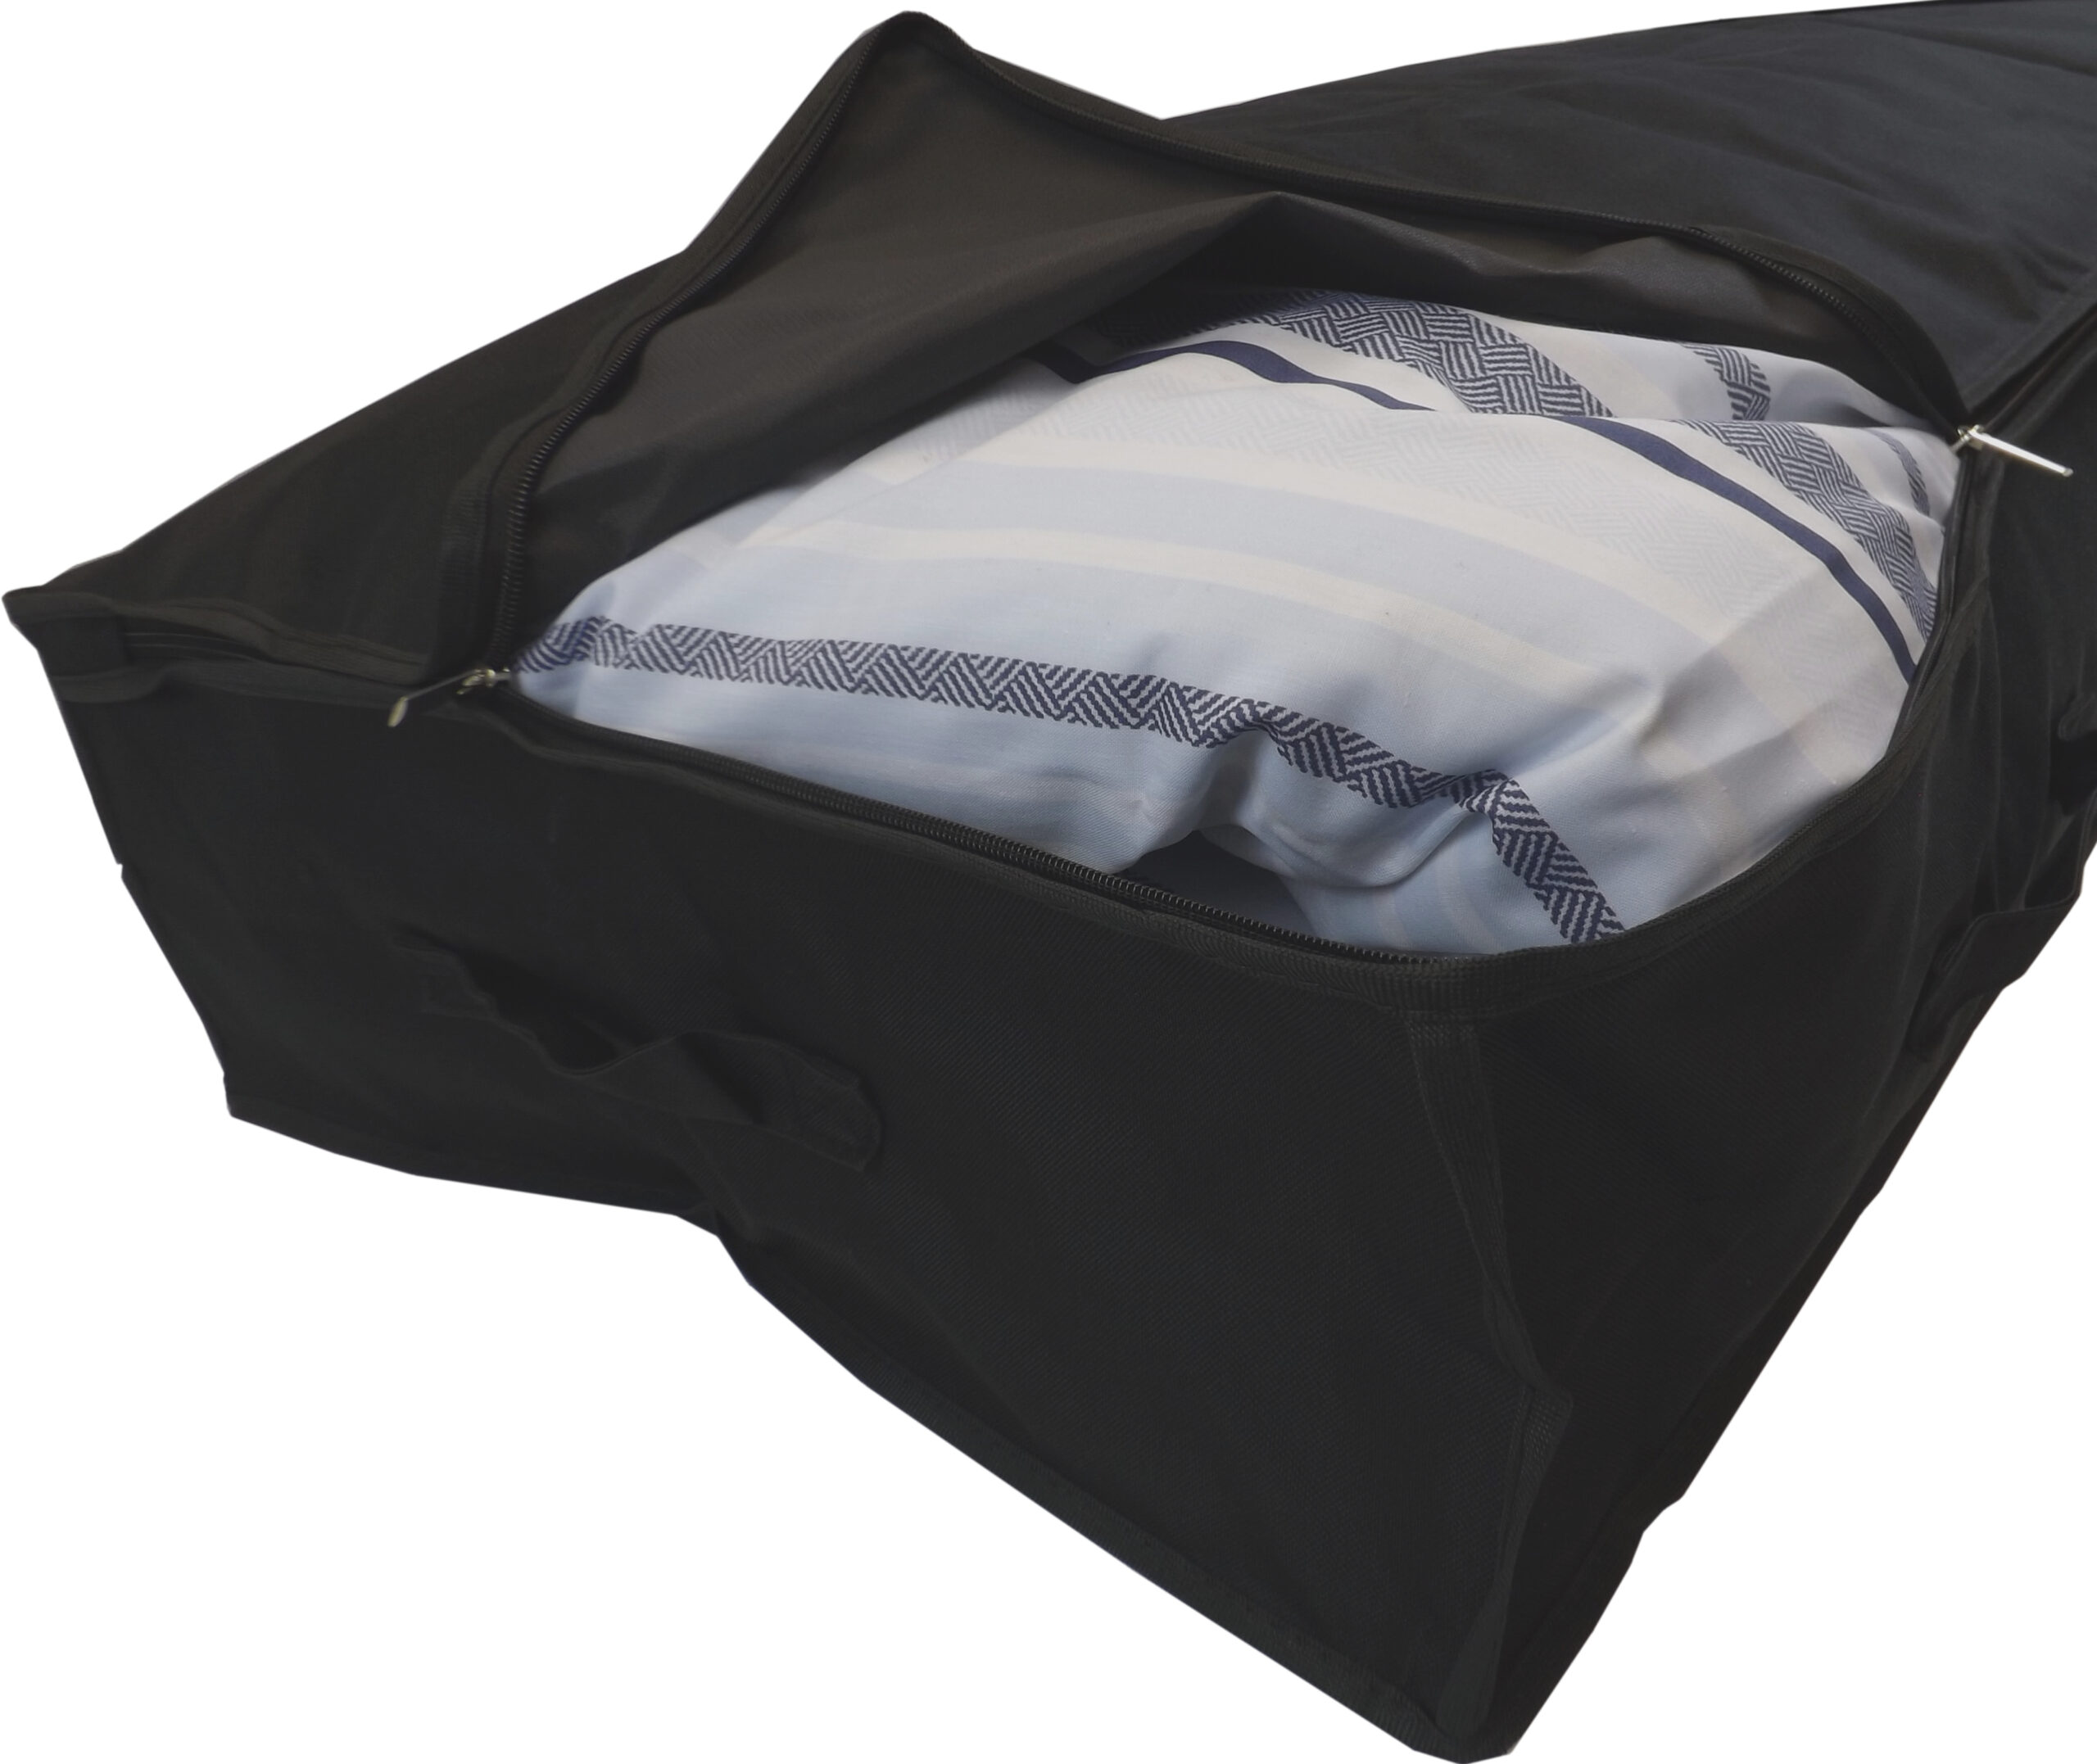 Large Underbed Storage Bag, Heavy Duty, 85 Litres Capacity, 100x48x18cm, Black